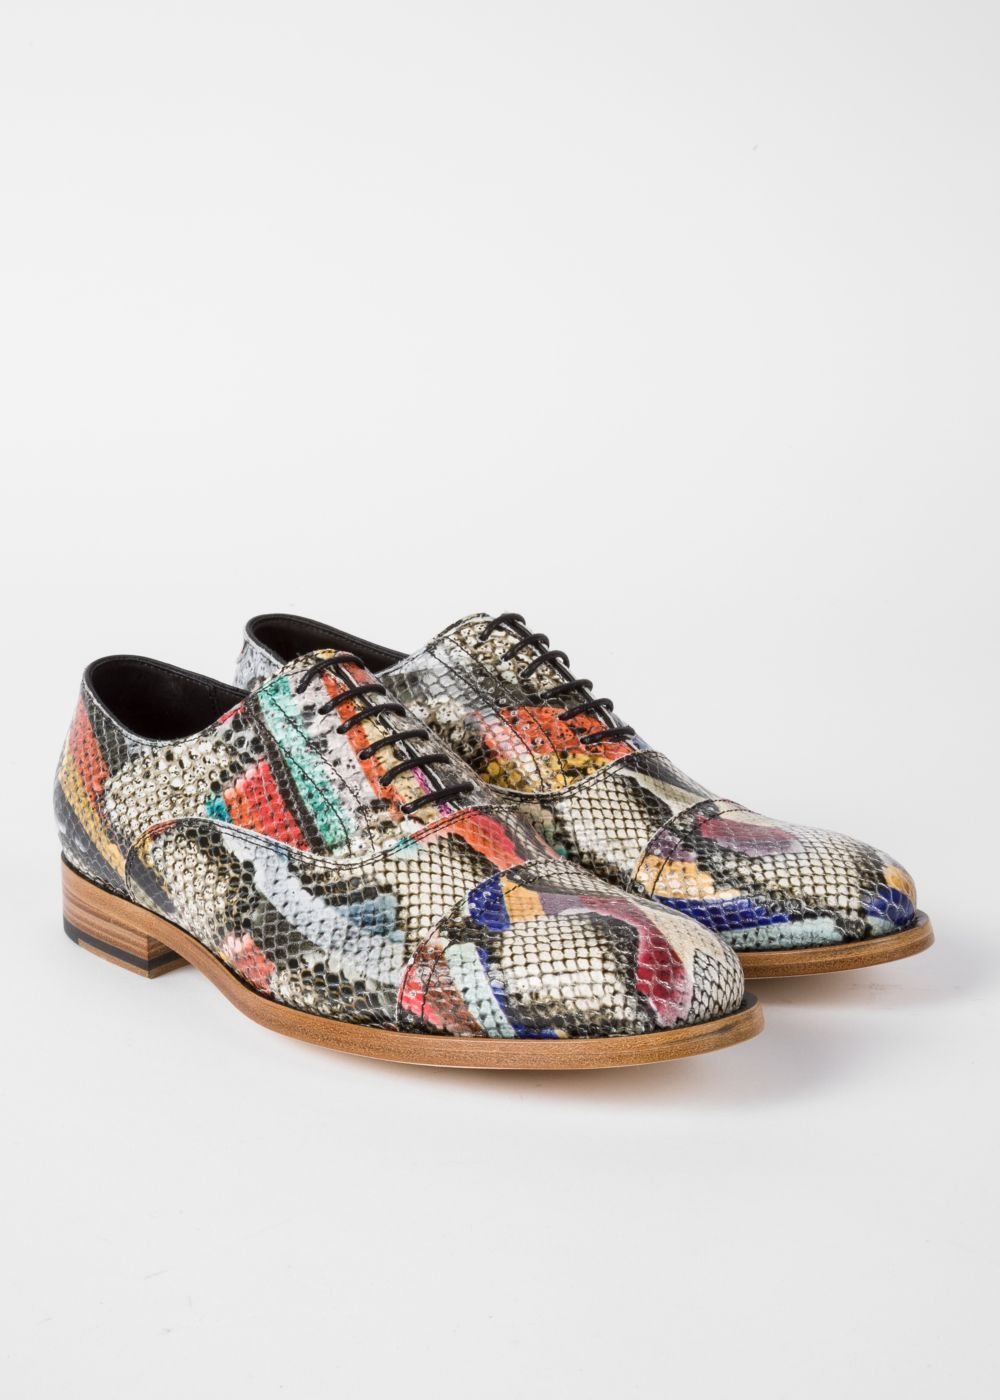 Leather 'Bertie' Brogues - Paul Smith